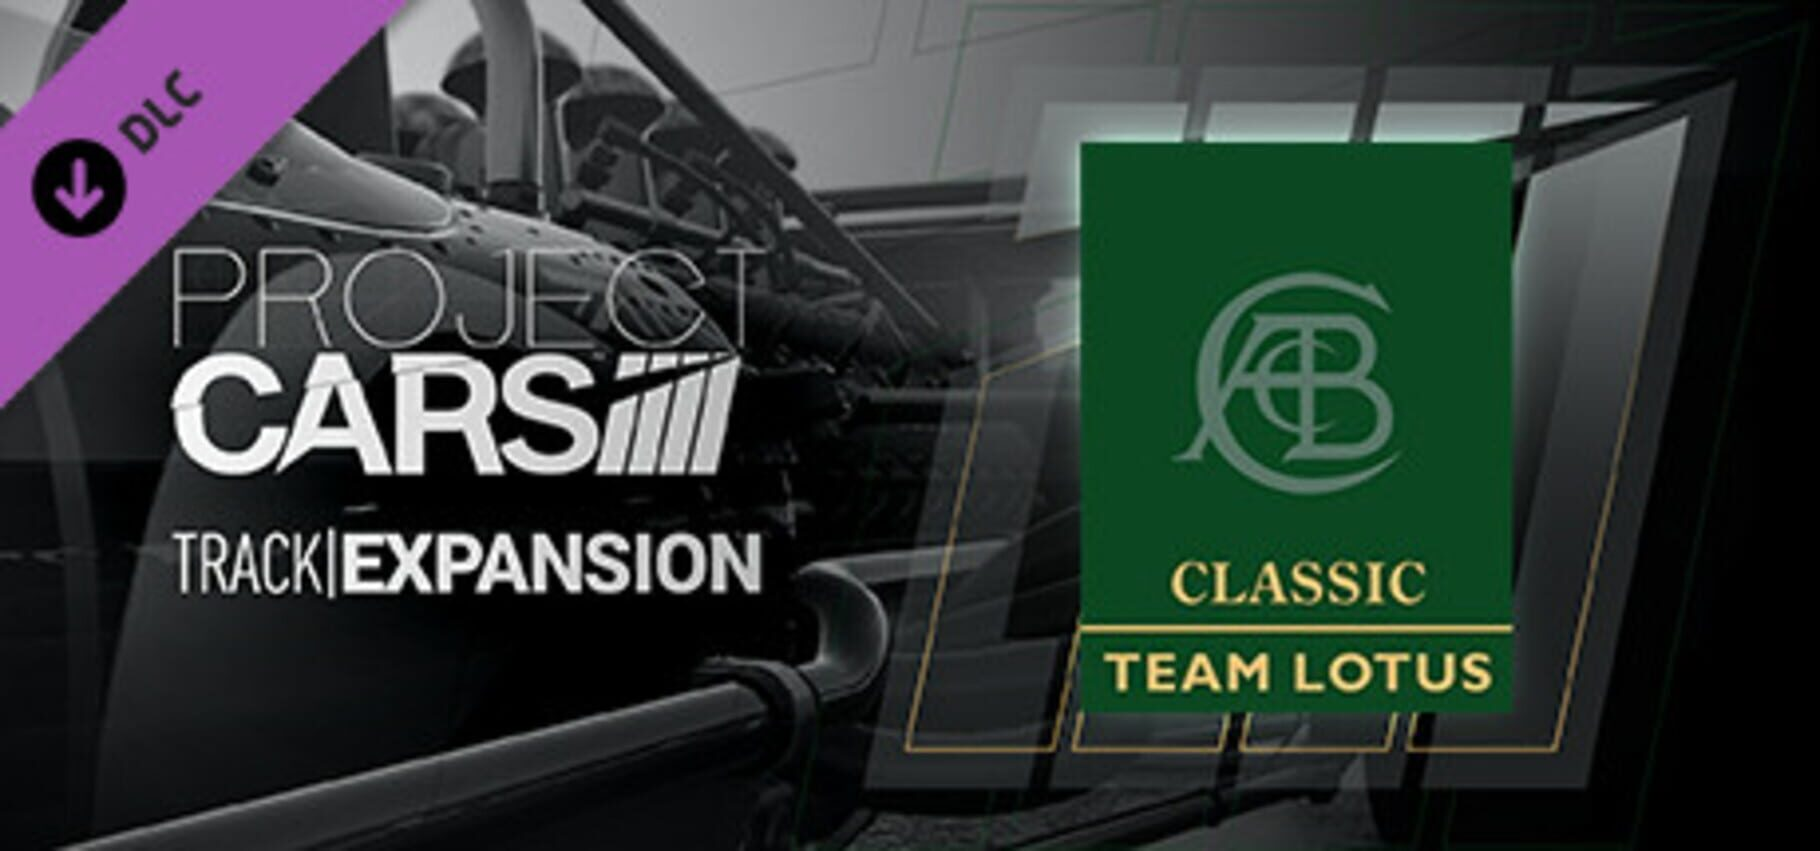 buy Project CARS: Classic Lotus Track Expansion cd key for all platform